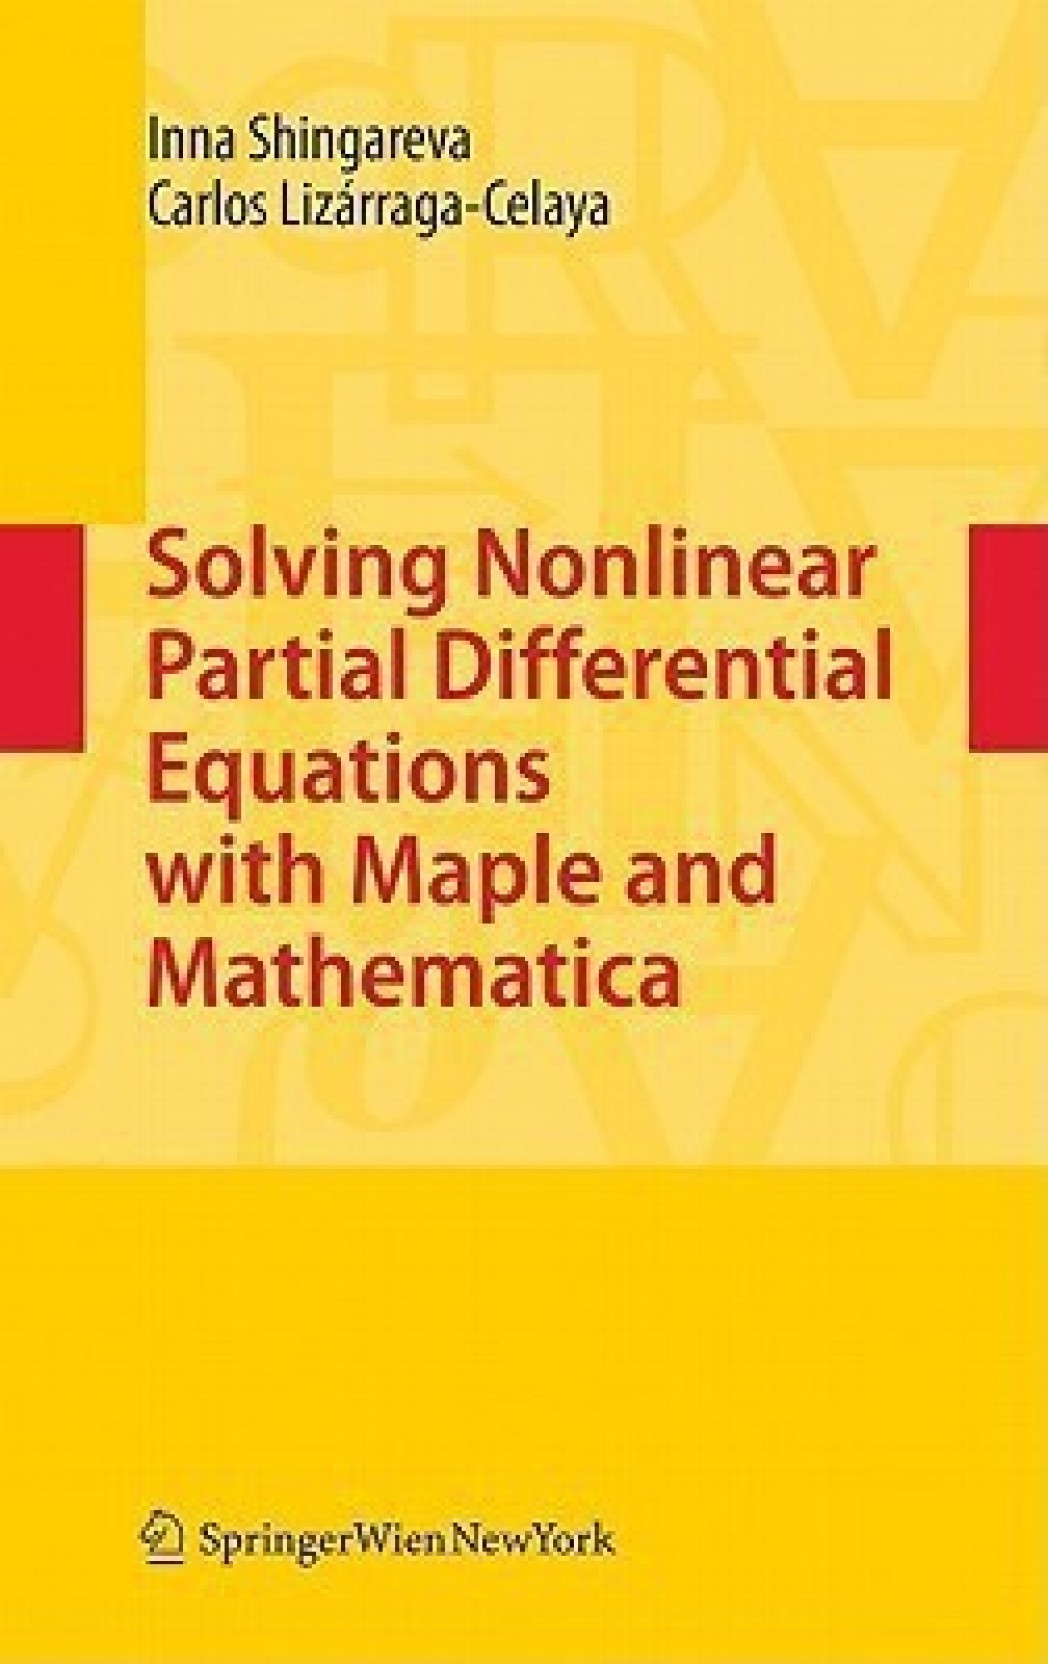 Solving Nonlinear Partial Differential Equations with Maple and  Mathematica. ADD TO CART